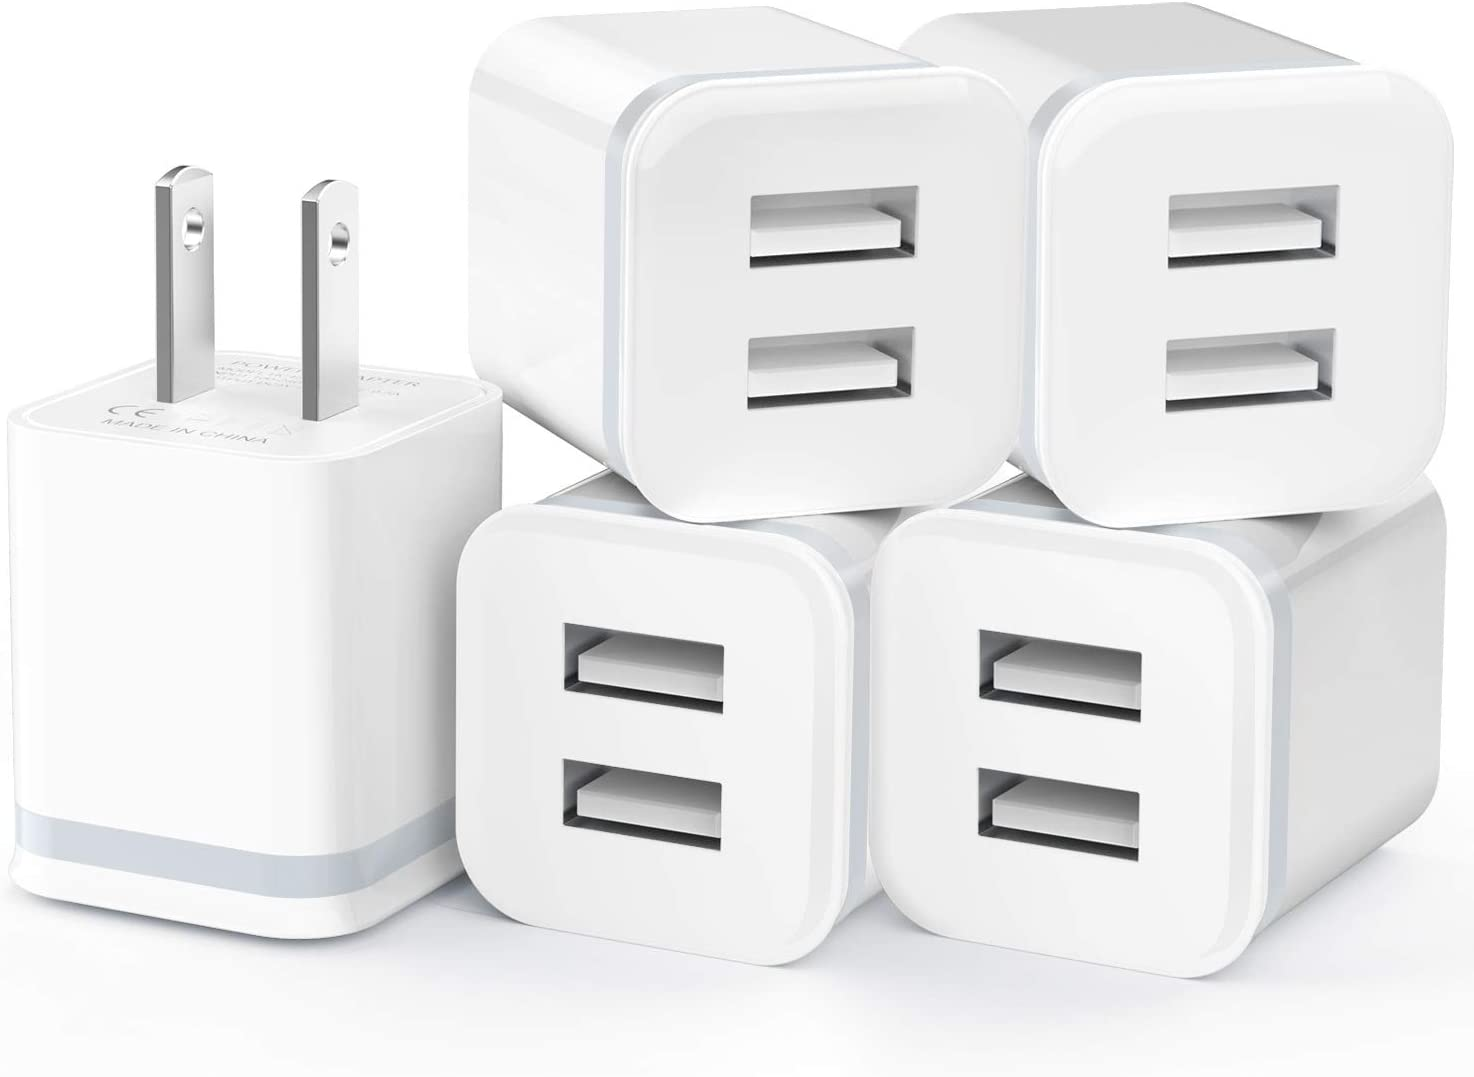 LUOATIP USB Wall Charger, 5-Pack 2.1A/5V Dual Port USB Cube Power Adapter Charger Plug Charging Block Replacement for iPhone Xs/XR/X, 8/7/6 Plus, Samsung, HTC, LG, Moto, Android Phones